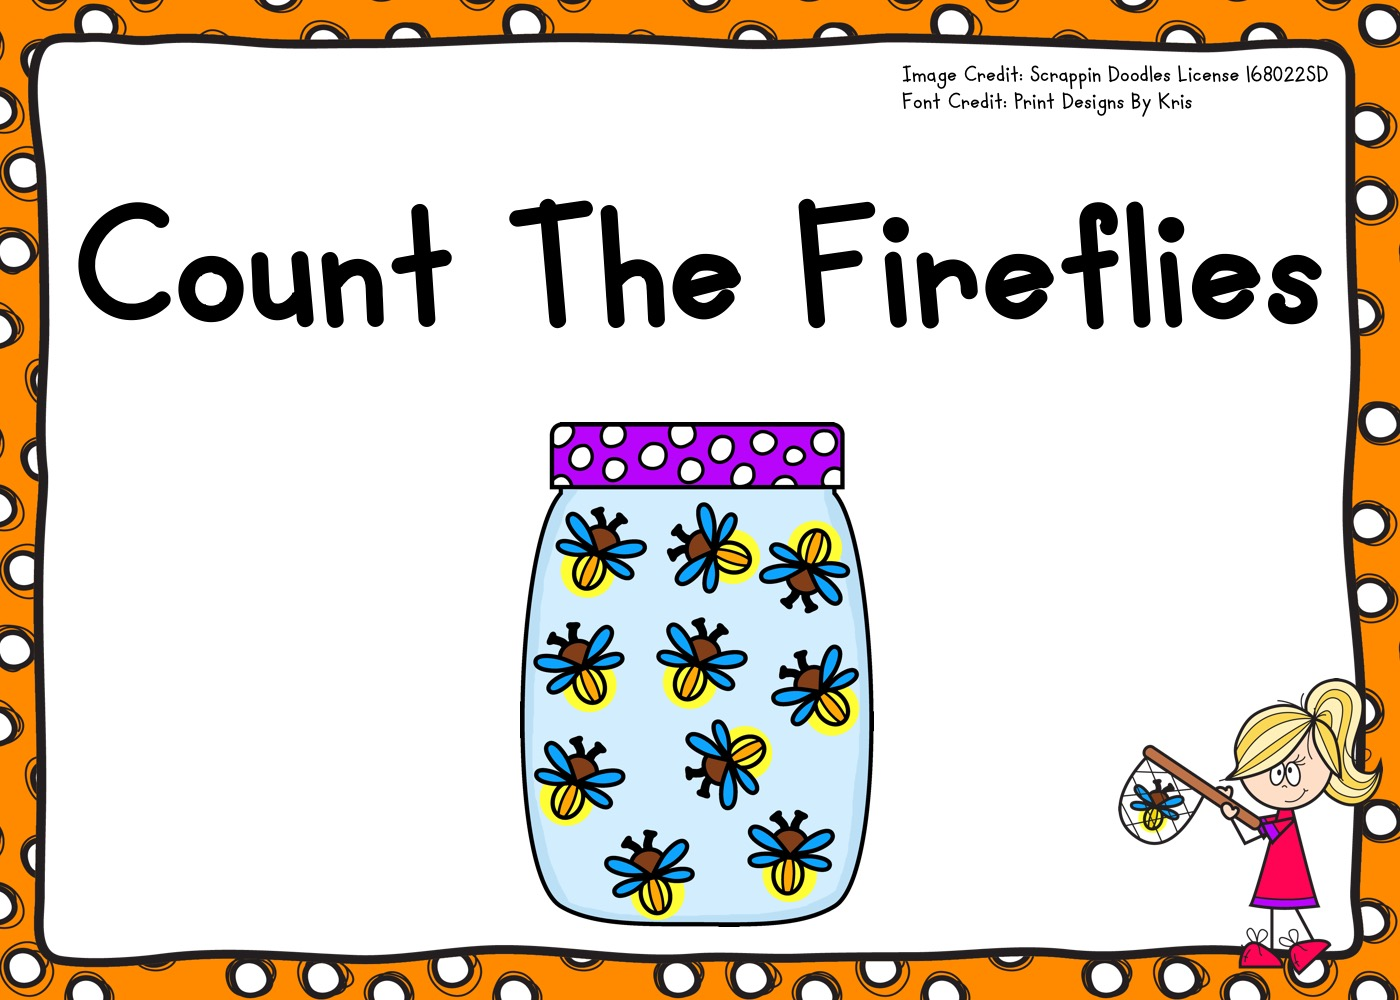 Fun Counting Printables for Preschool and Kindergarten | Animal Themed Spring Games | Hands On Math Homeschool Activities | Kids Classroom Center Ideas and Worksheets #FreePrintableWorksheetsForKids #fireflies #insect #spring #animal #counting